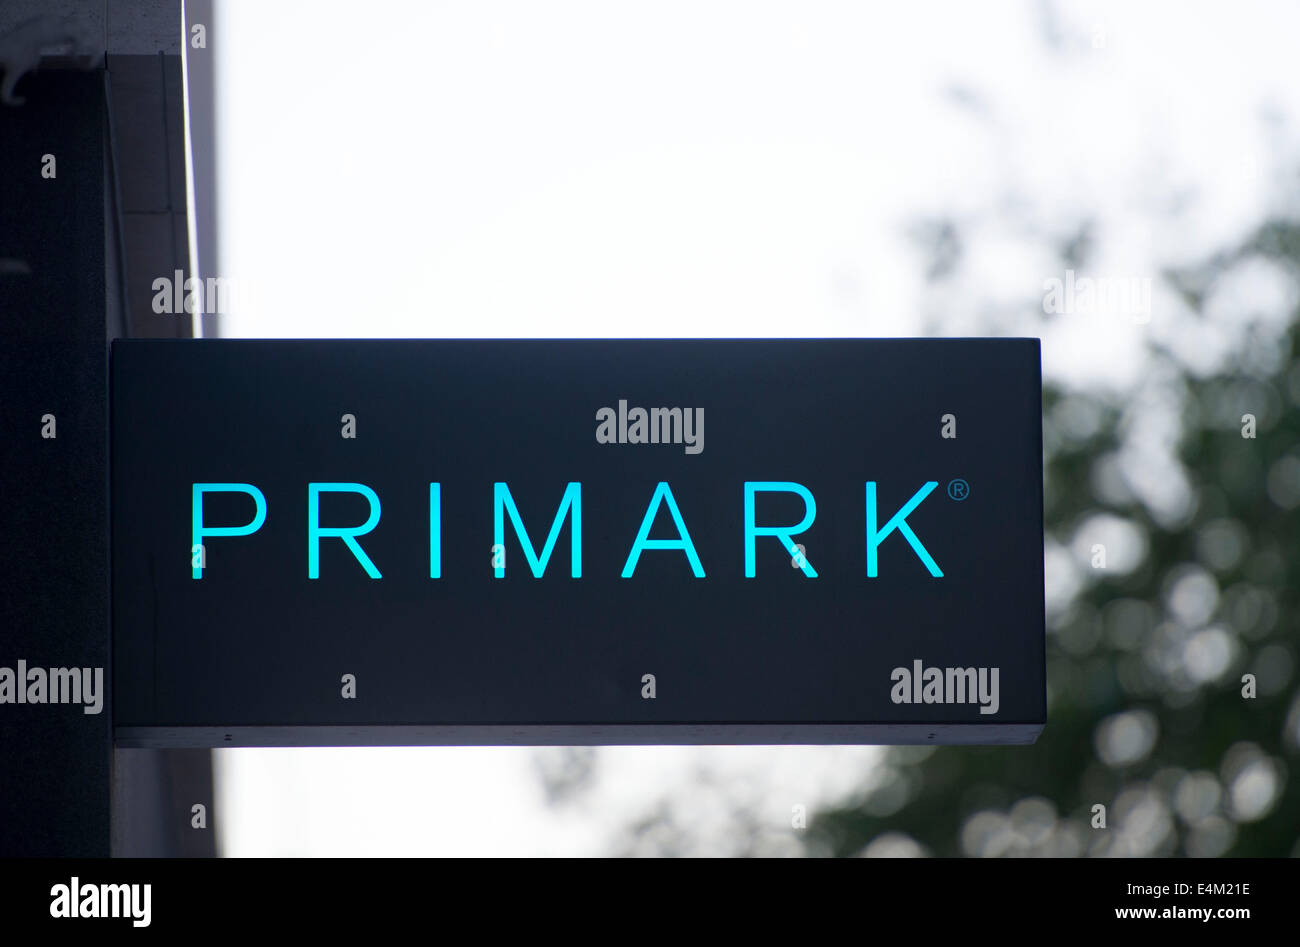 primark store sign - Stock Image